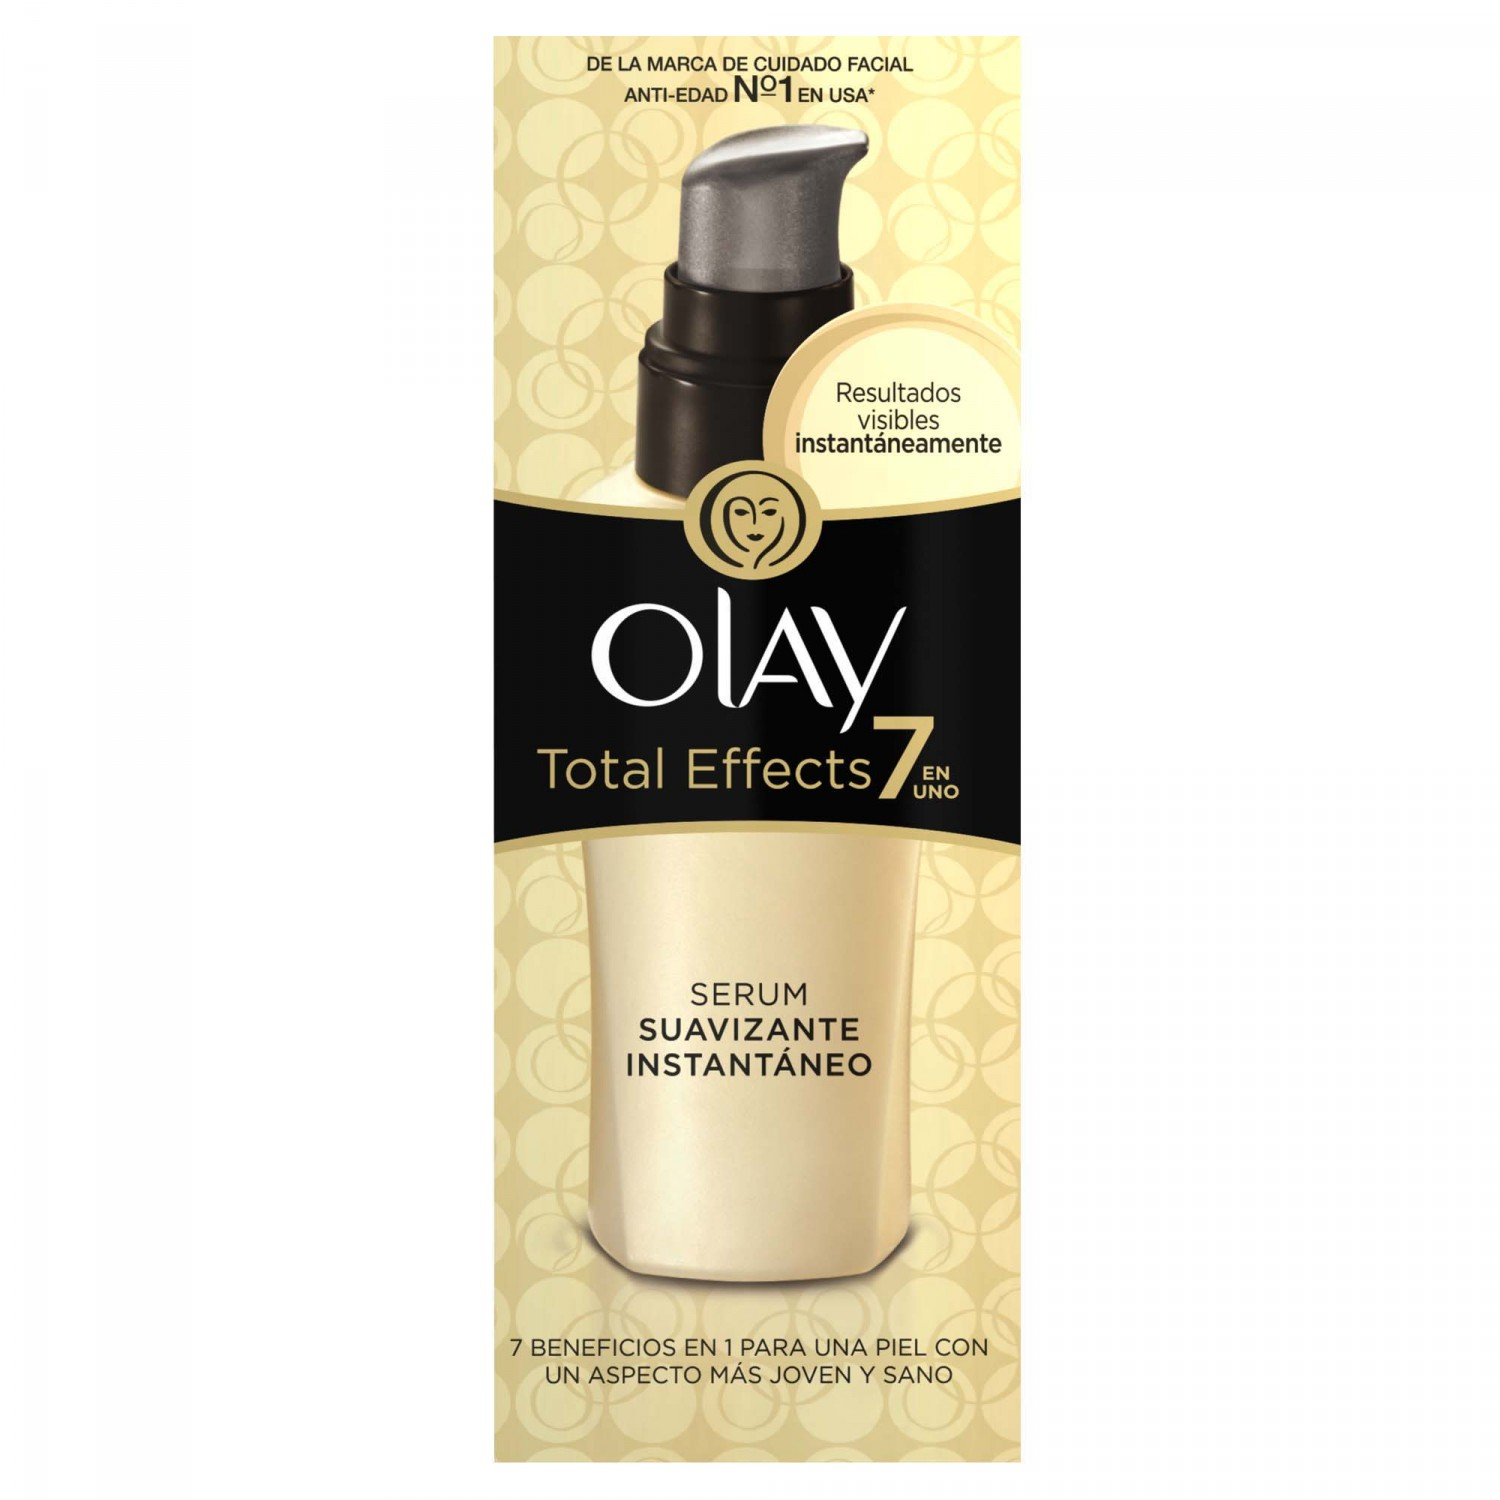 Olay total effects 7 en 1 serum suavizante instantaneo tubo de 50ml.